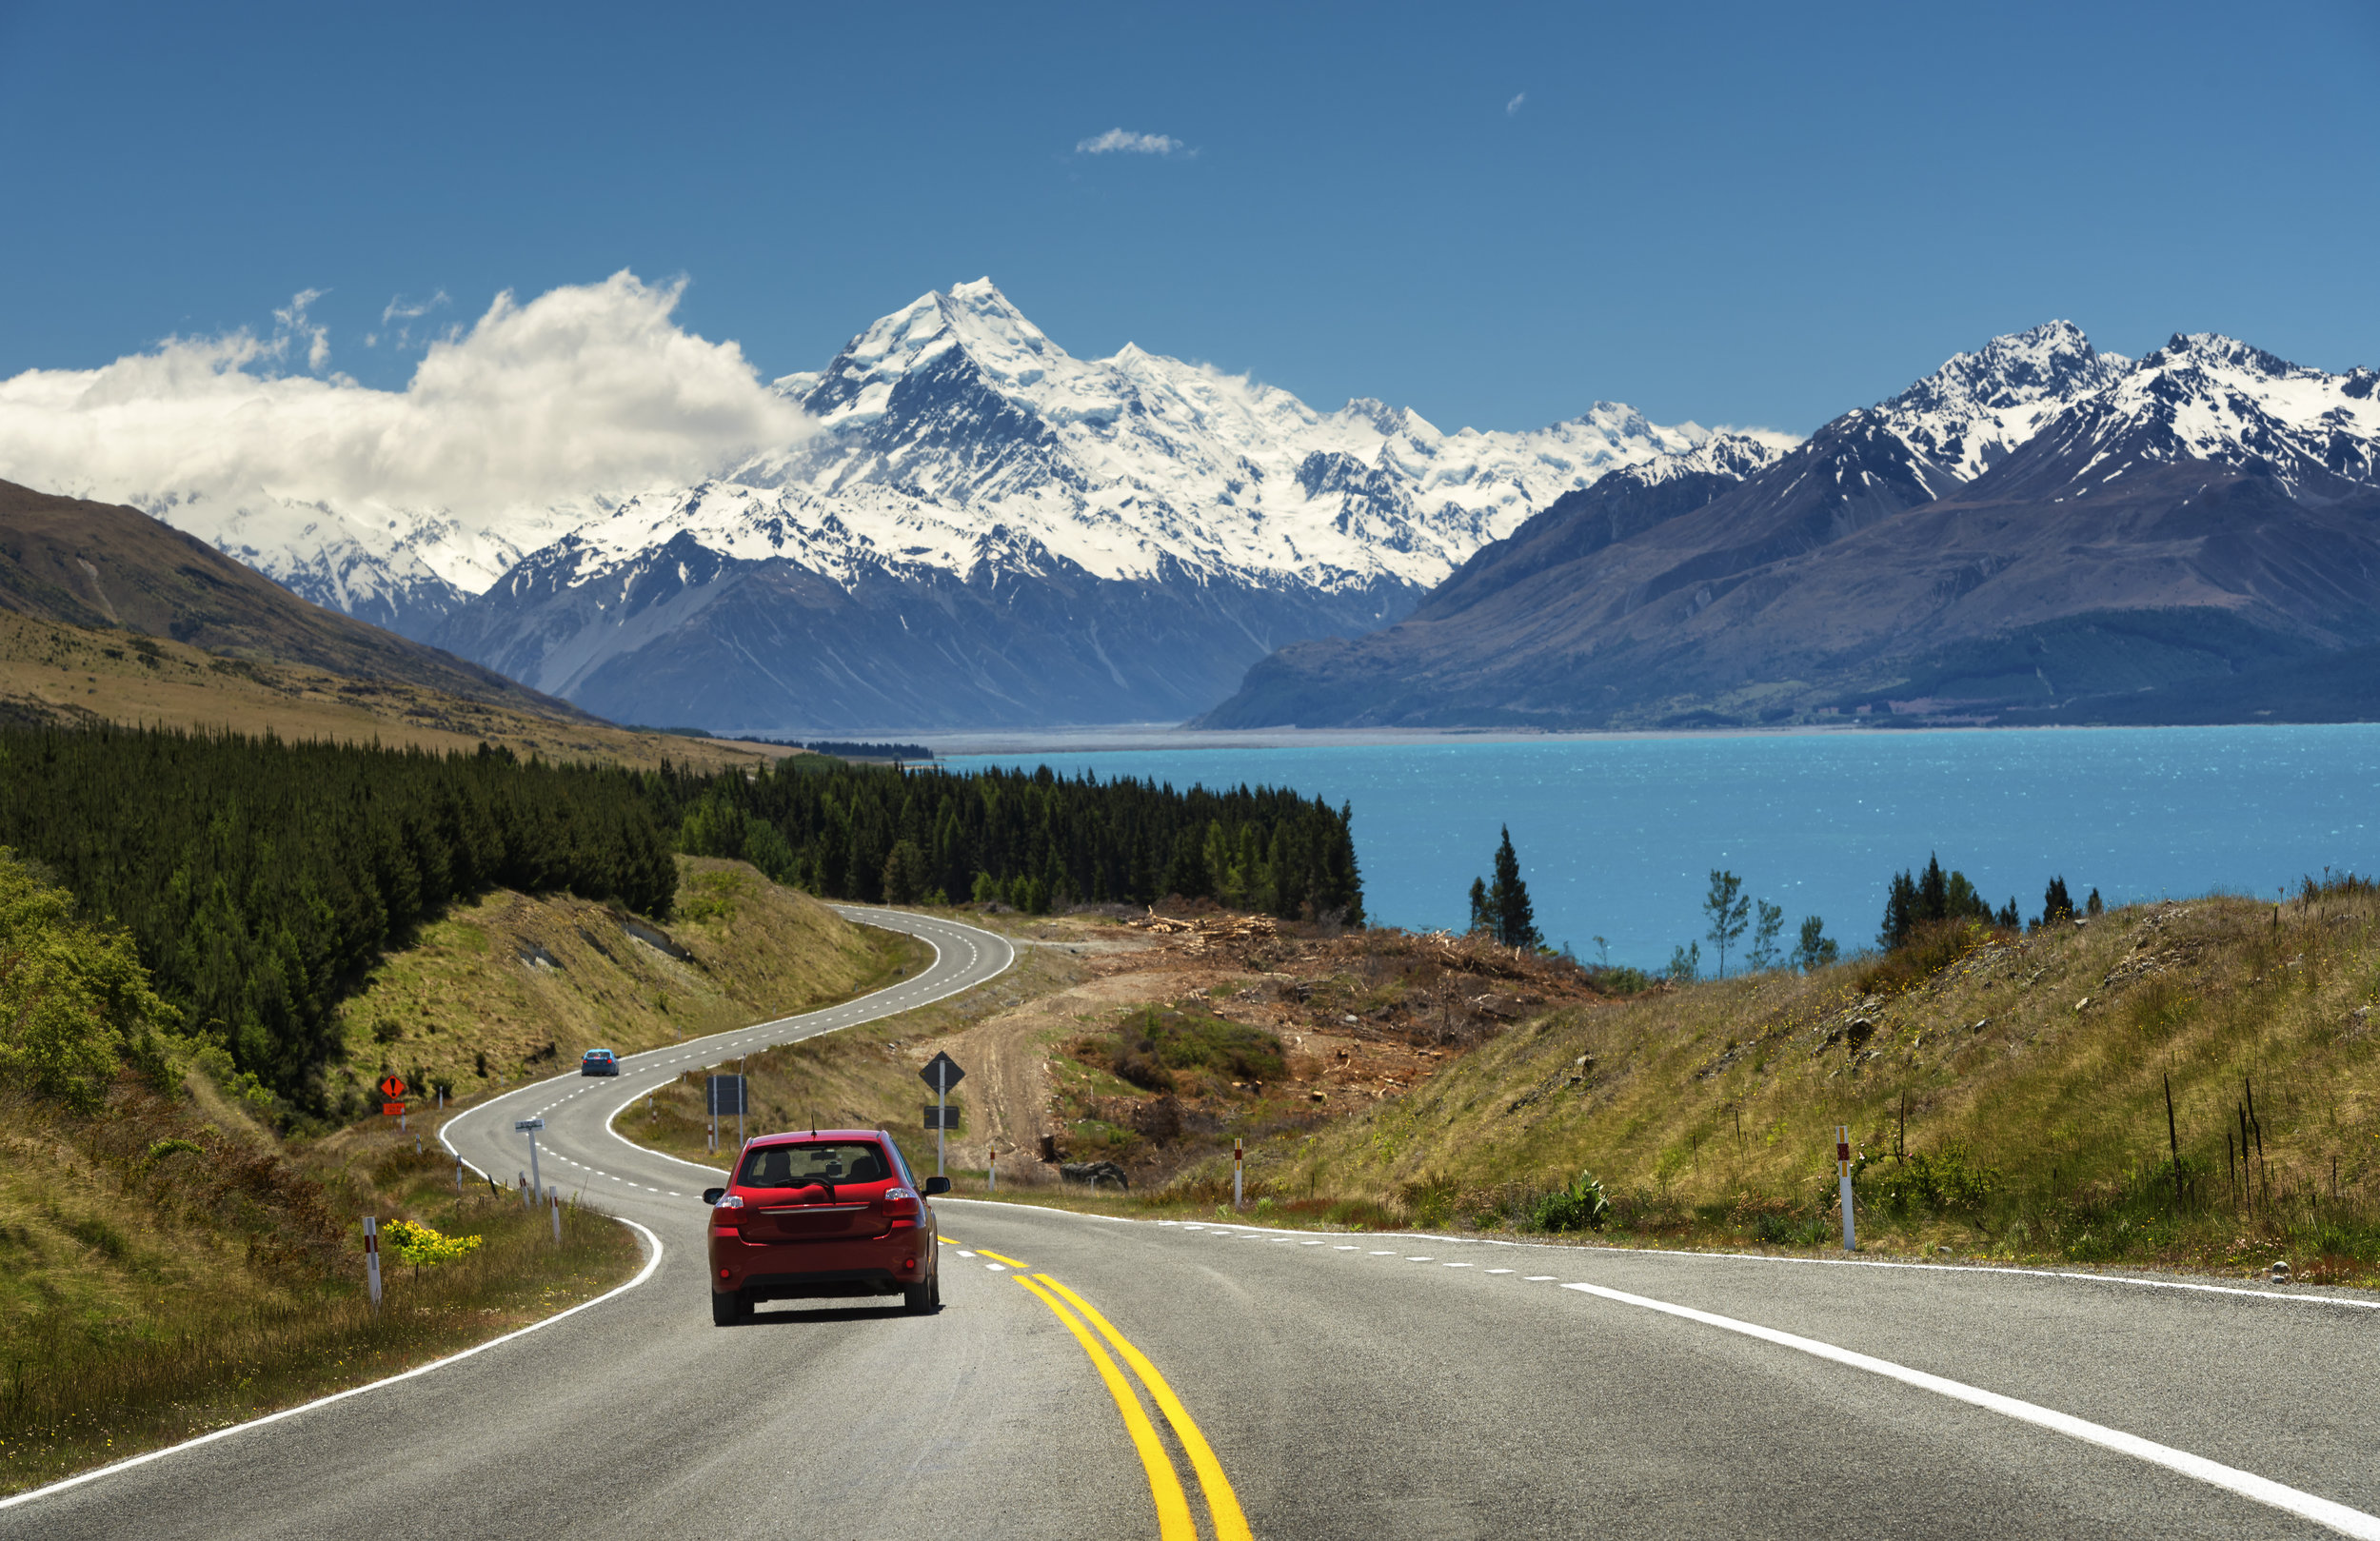 State Highway 80 -Source: iStock